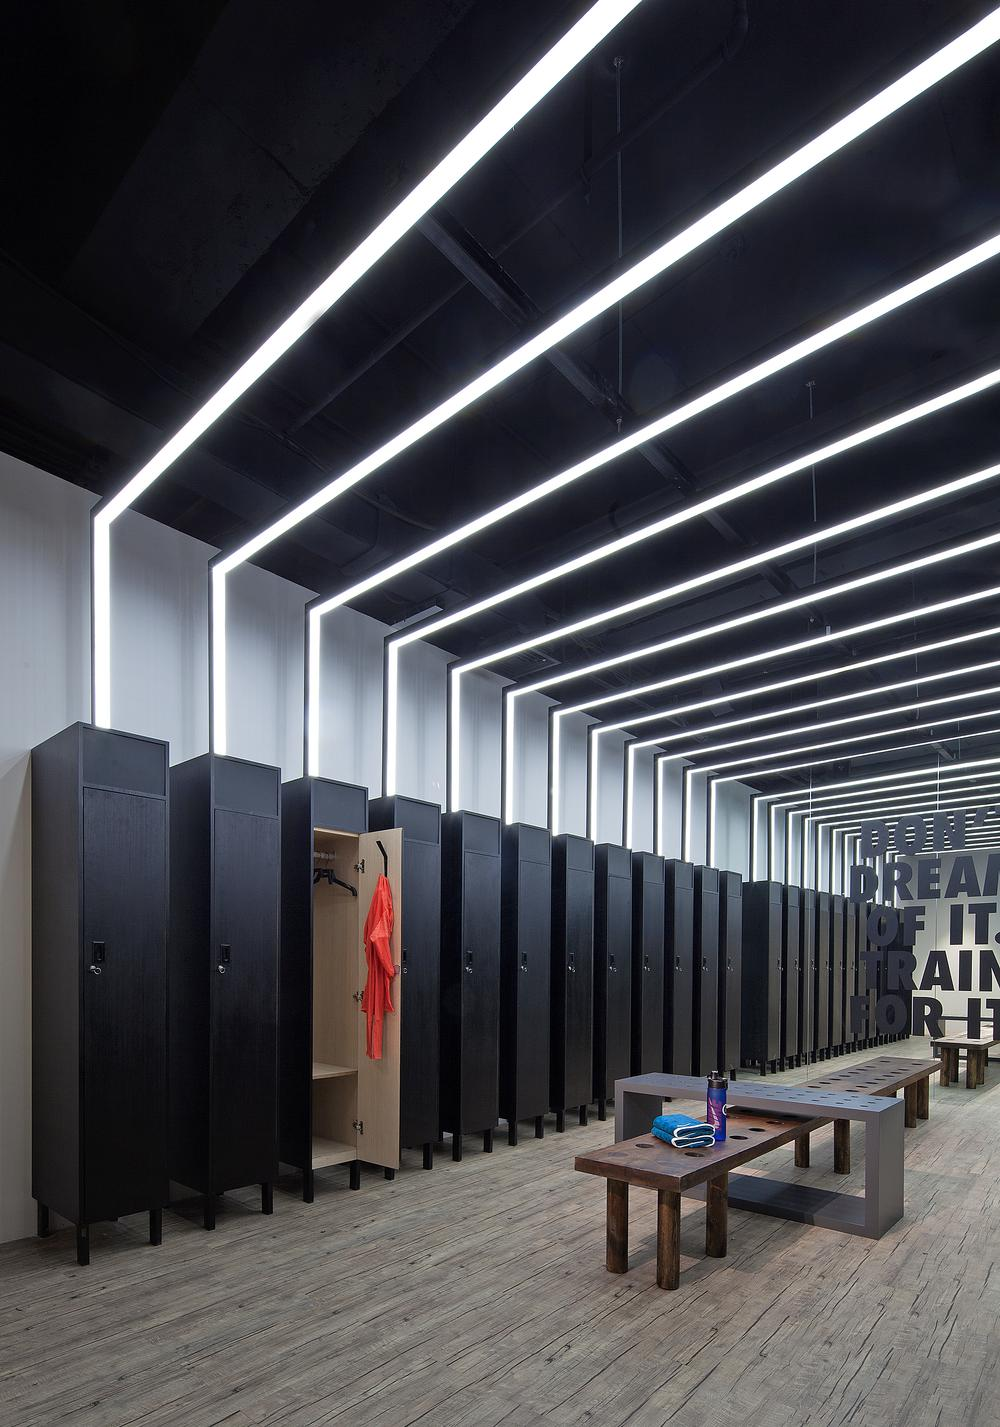 Excellent changing rooms are vital to the success of sport, leisure and fitness operations